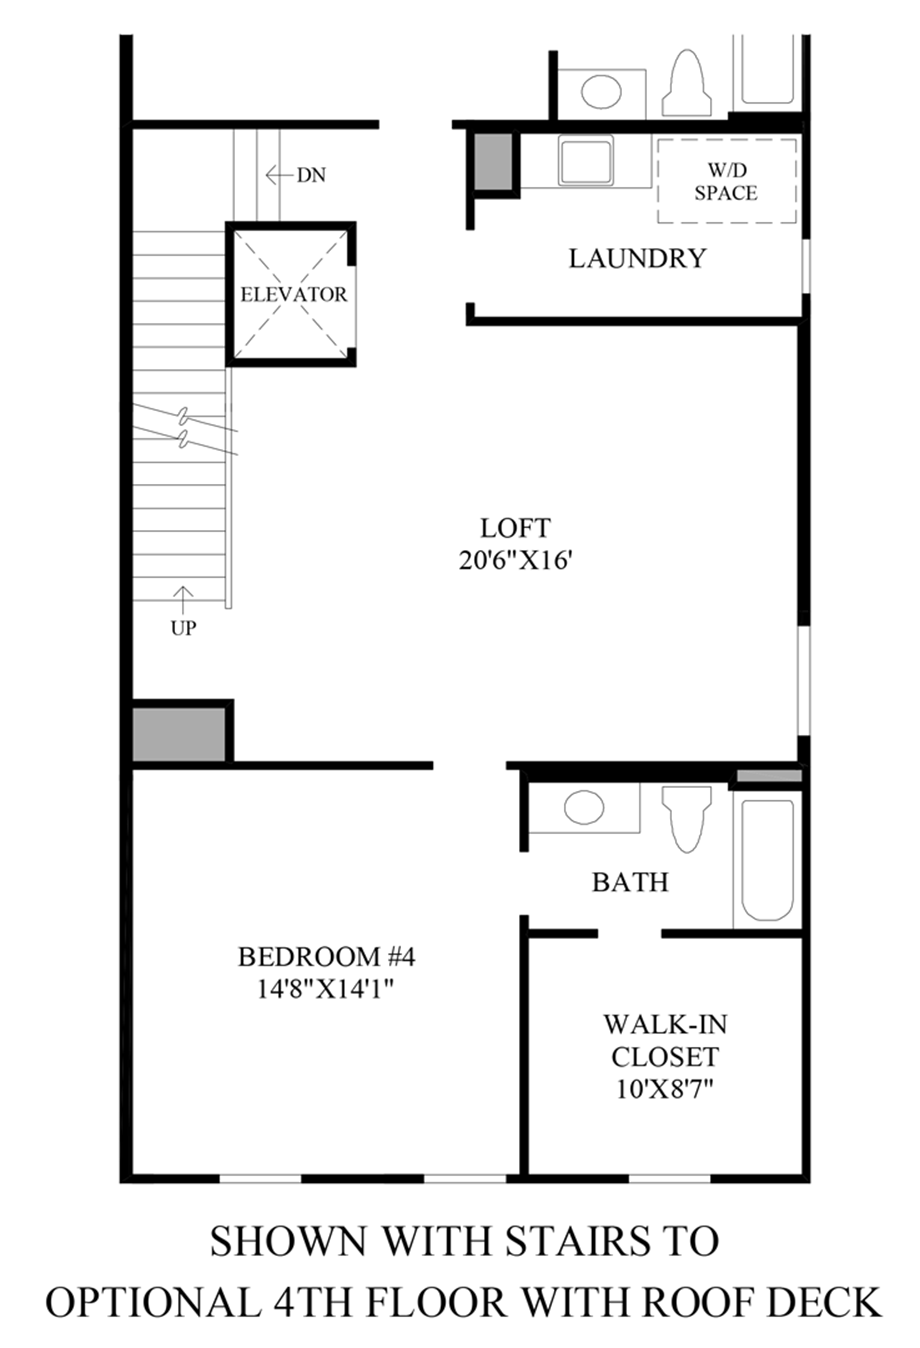 Optional Stairs to 4th Floor w/ Roof Deck Floor Plan